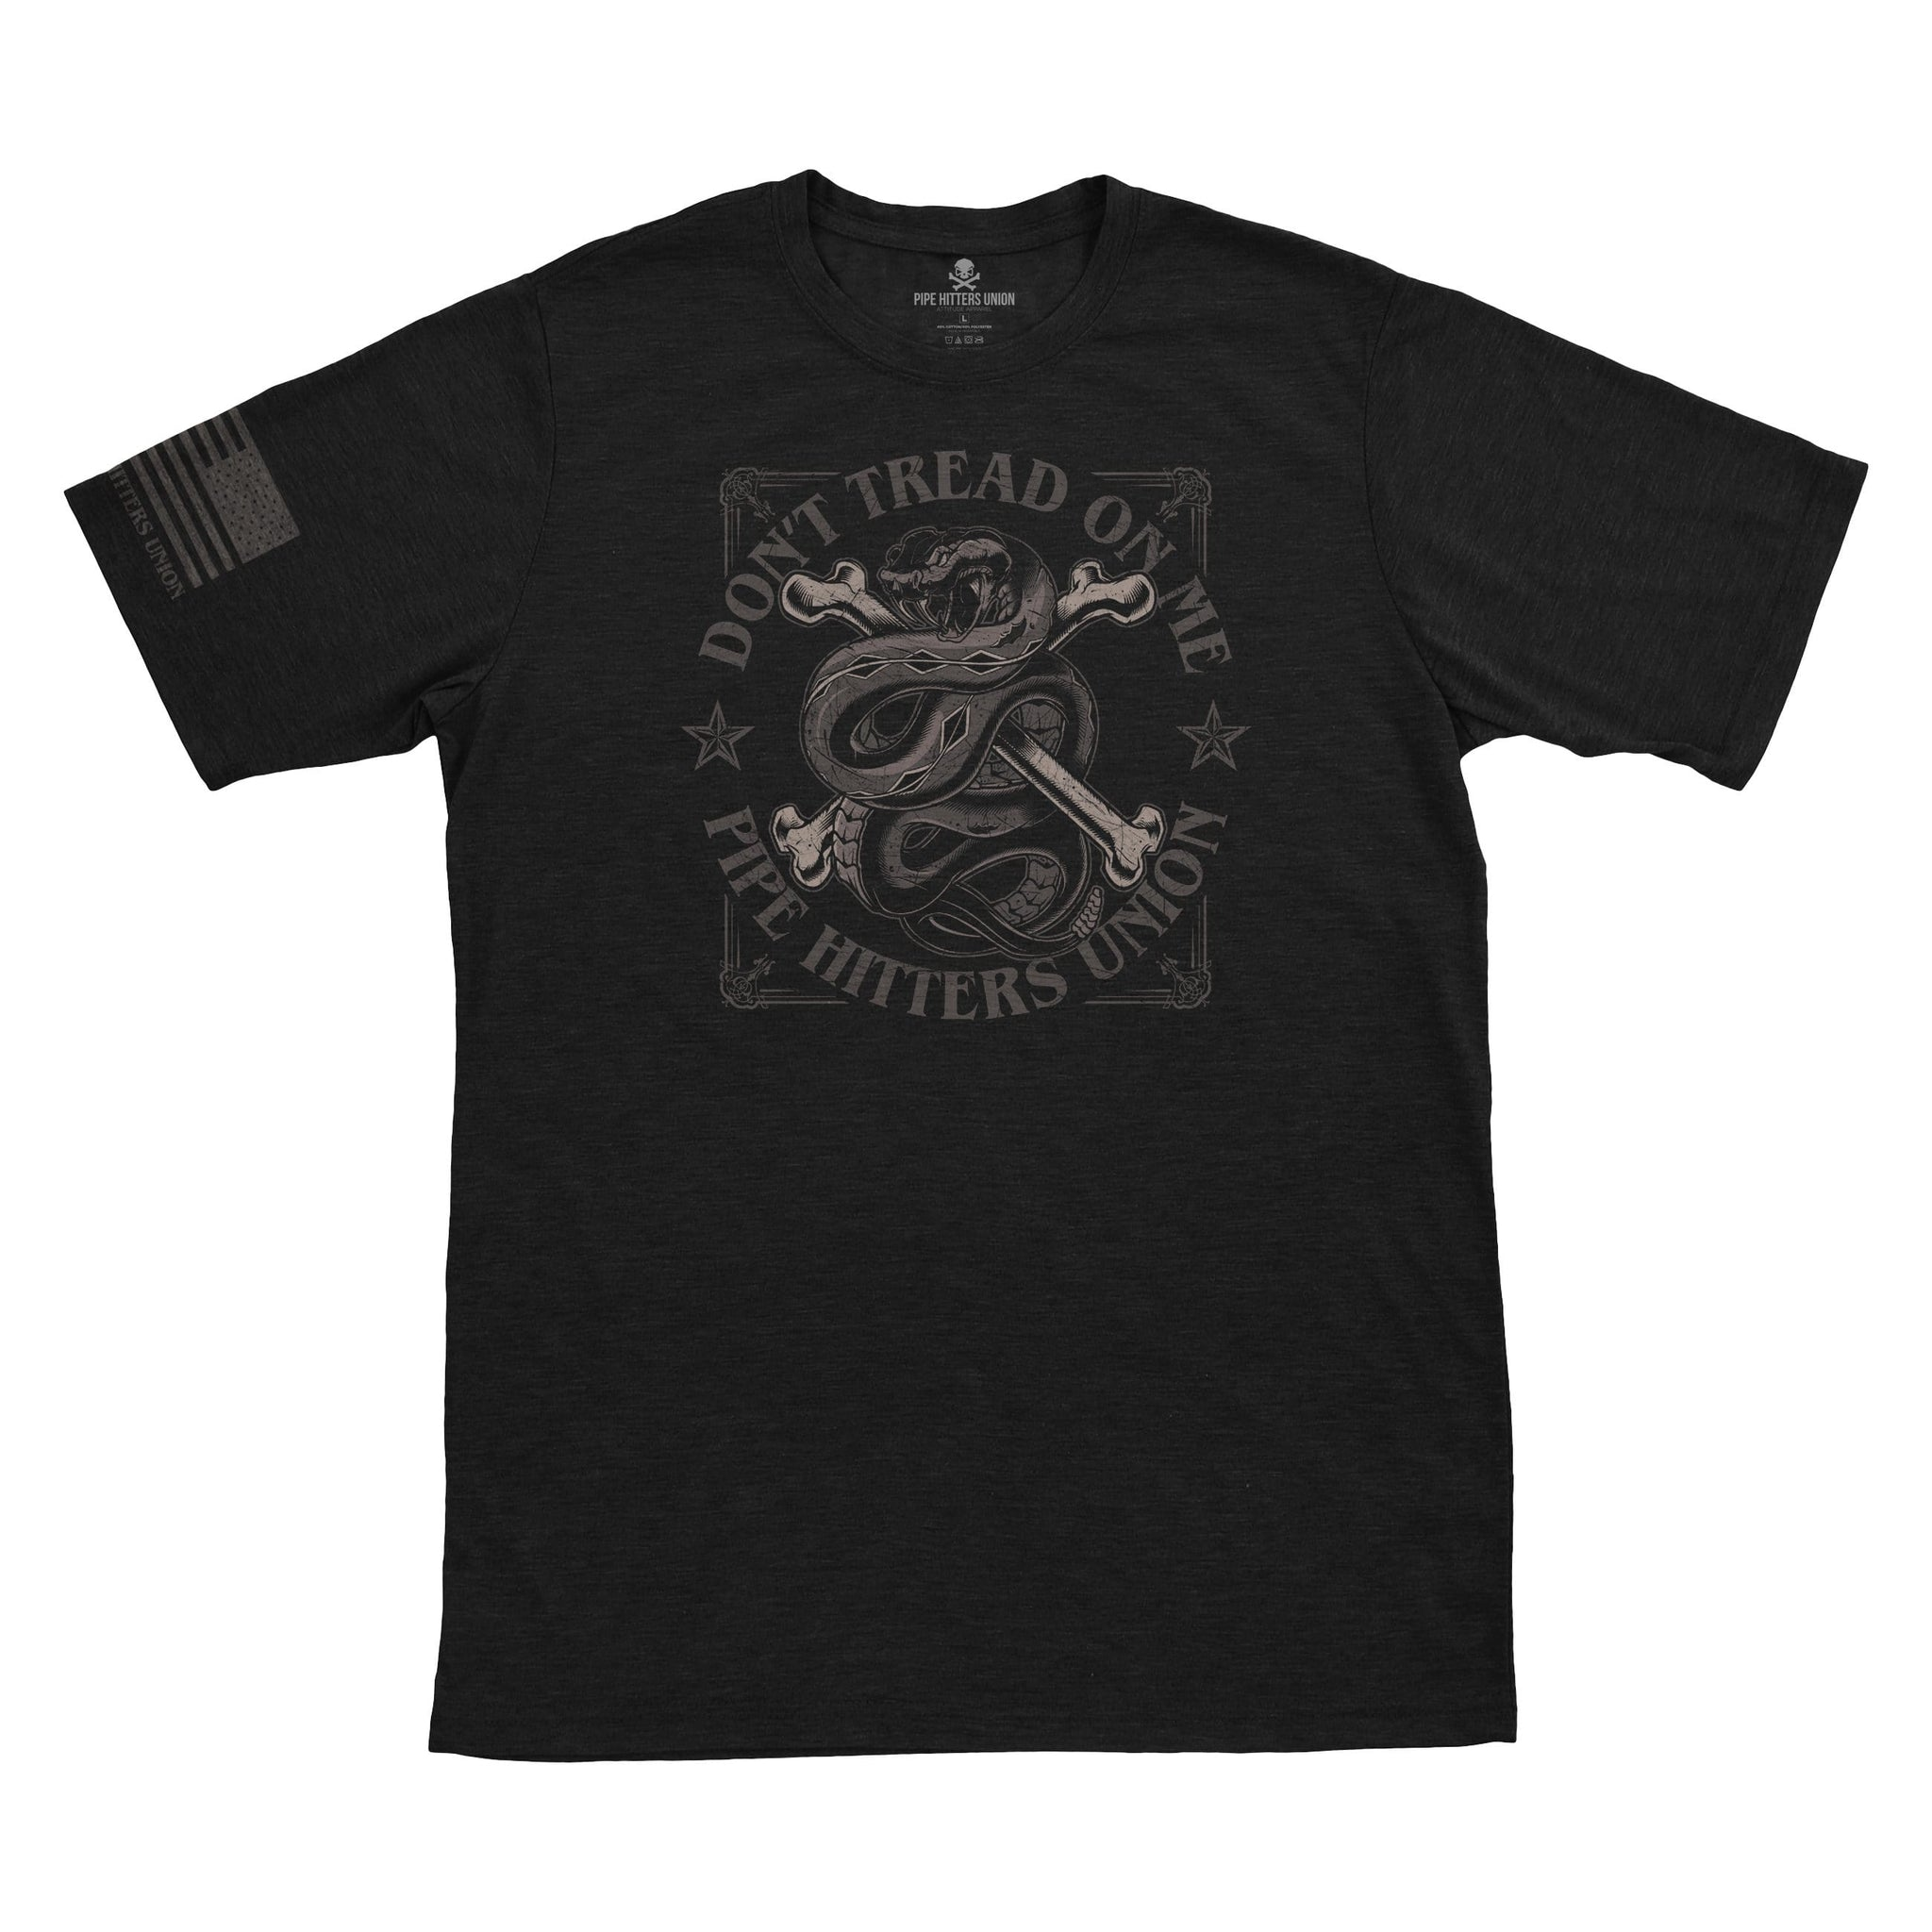 Don't Tread on Me - Black - T-Shirts - Pipe Hitters Union